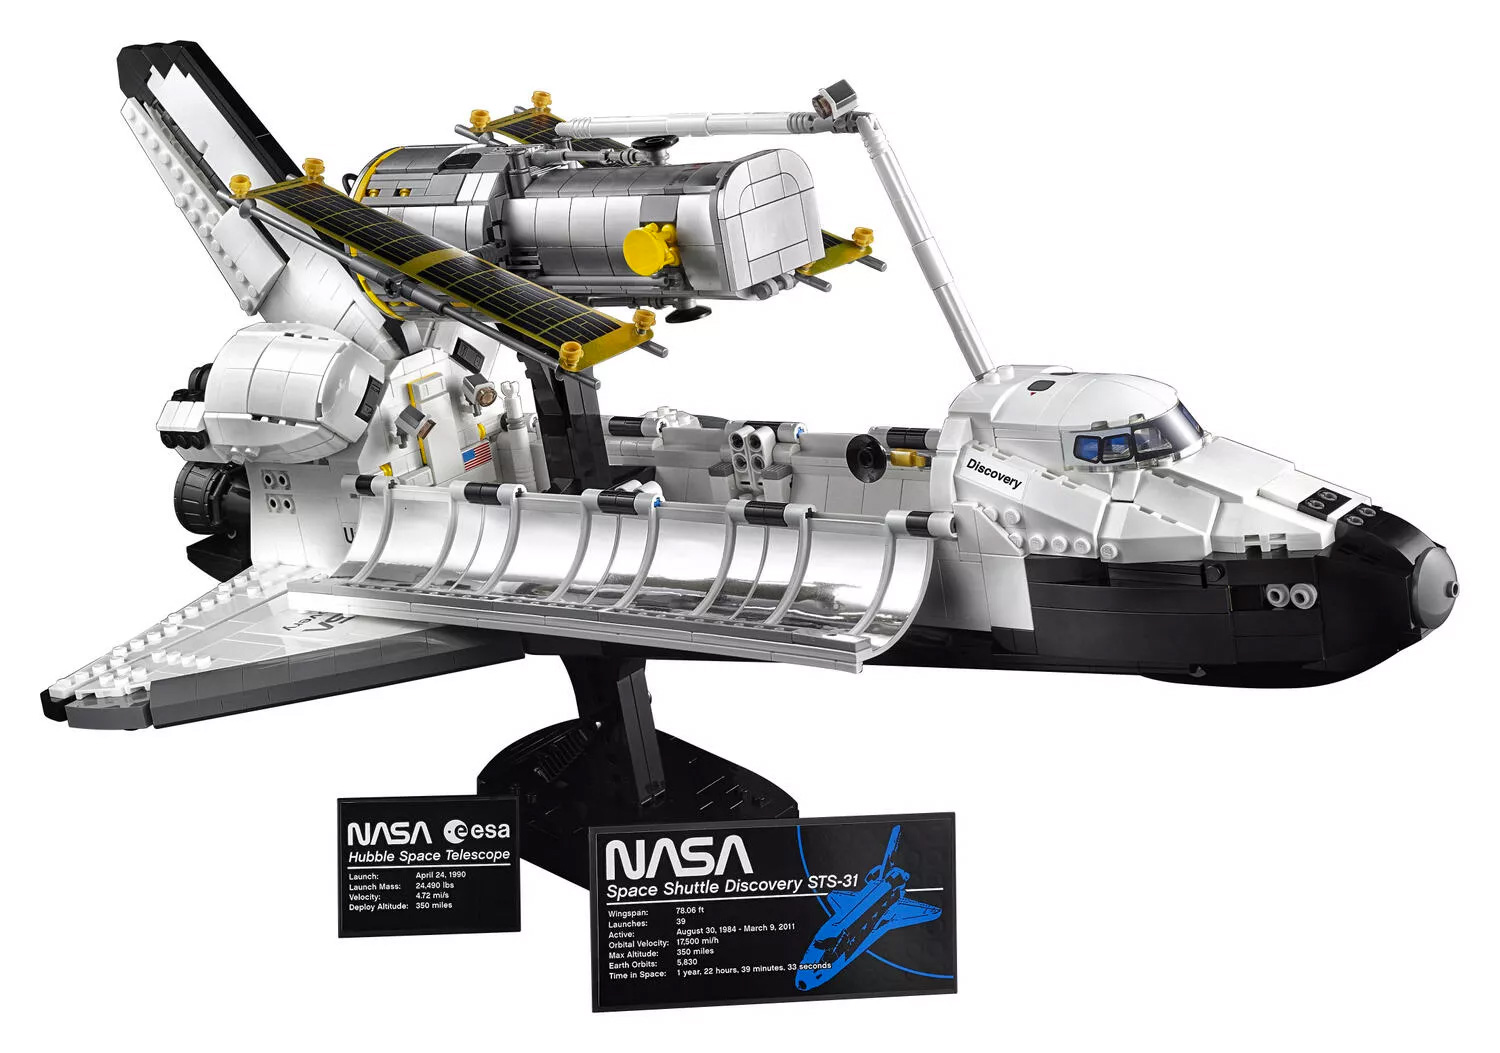 Lego Launches 2,354-Piece Space Shuttle Discovery Set at werd.com